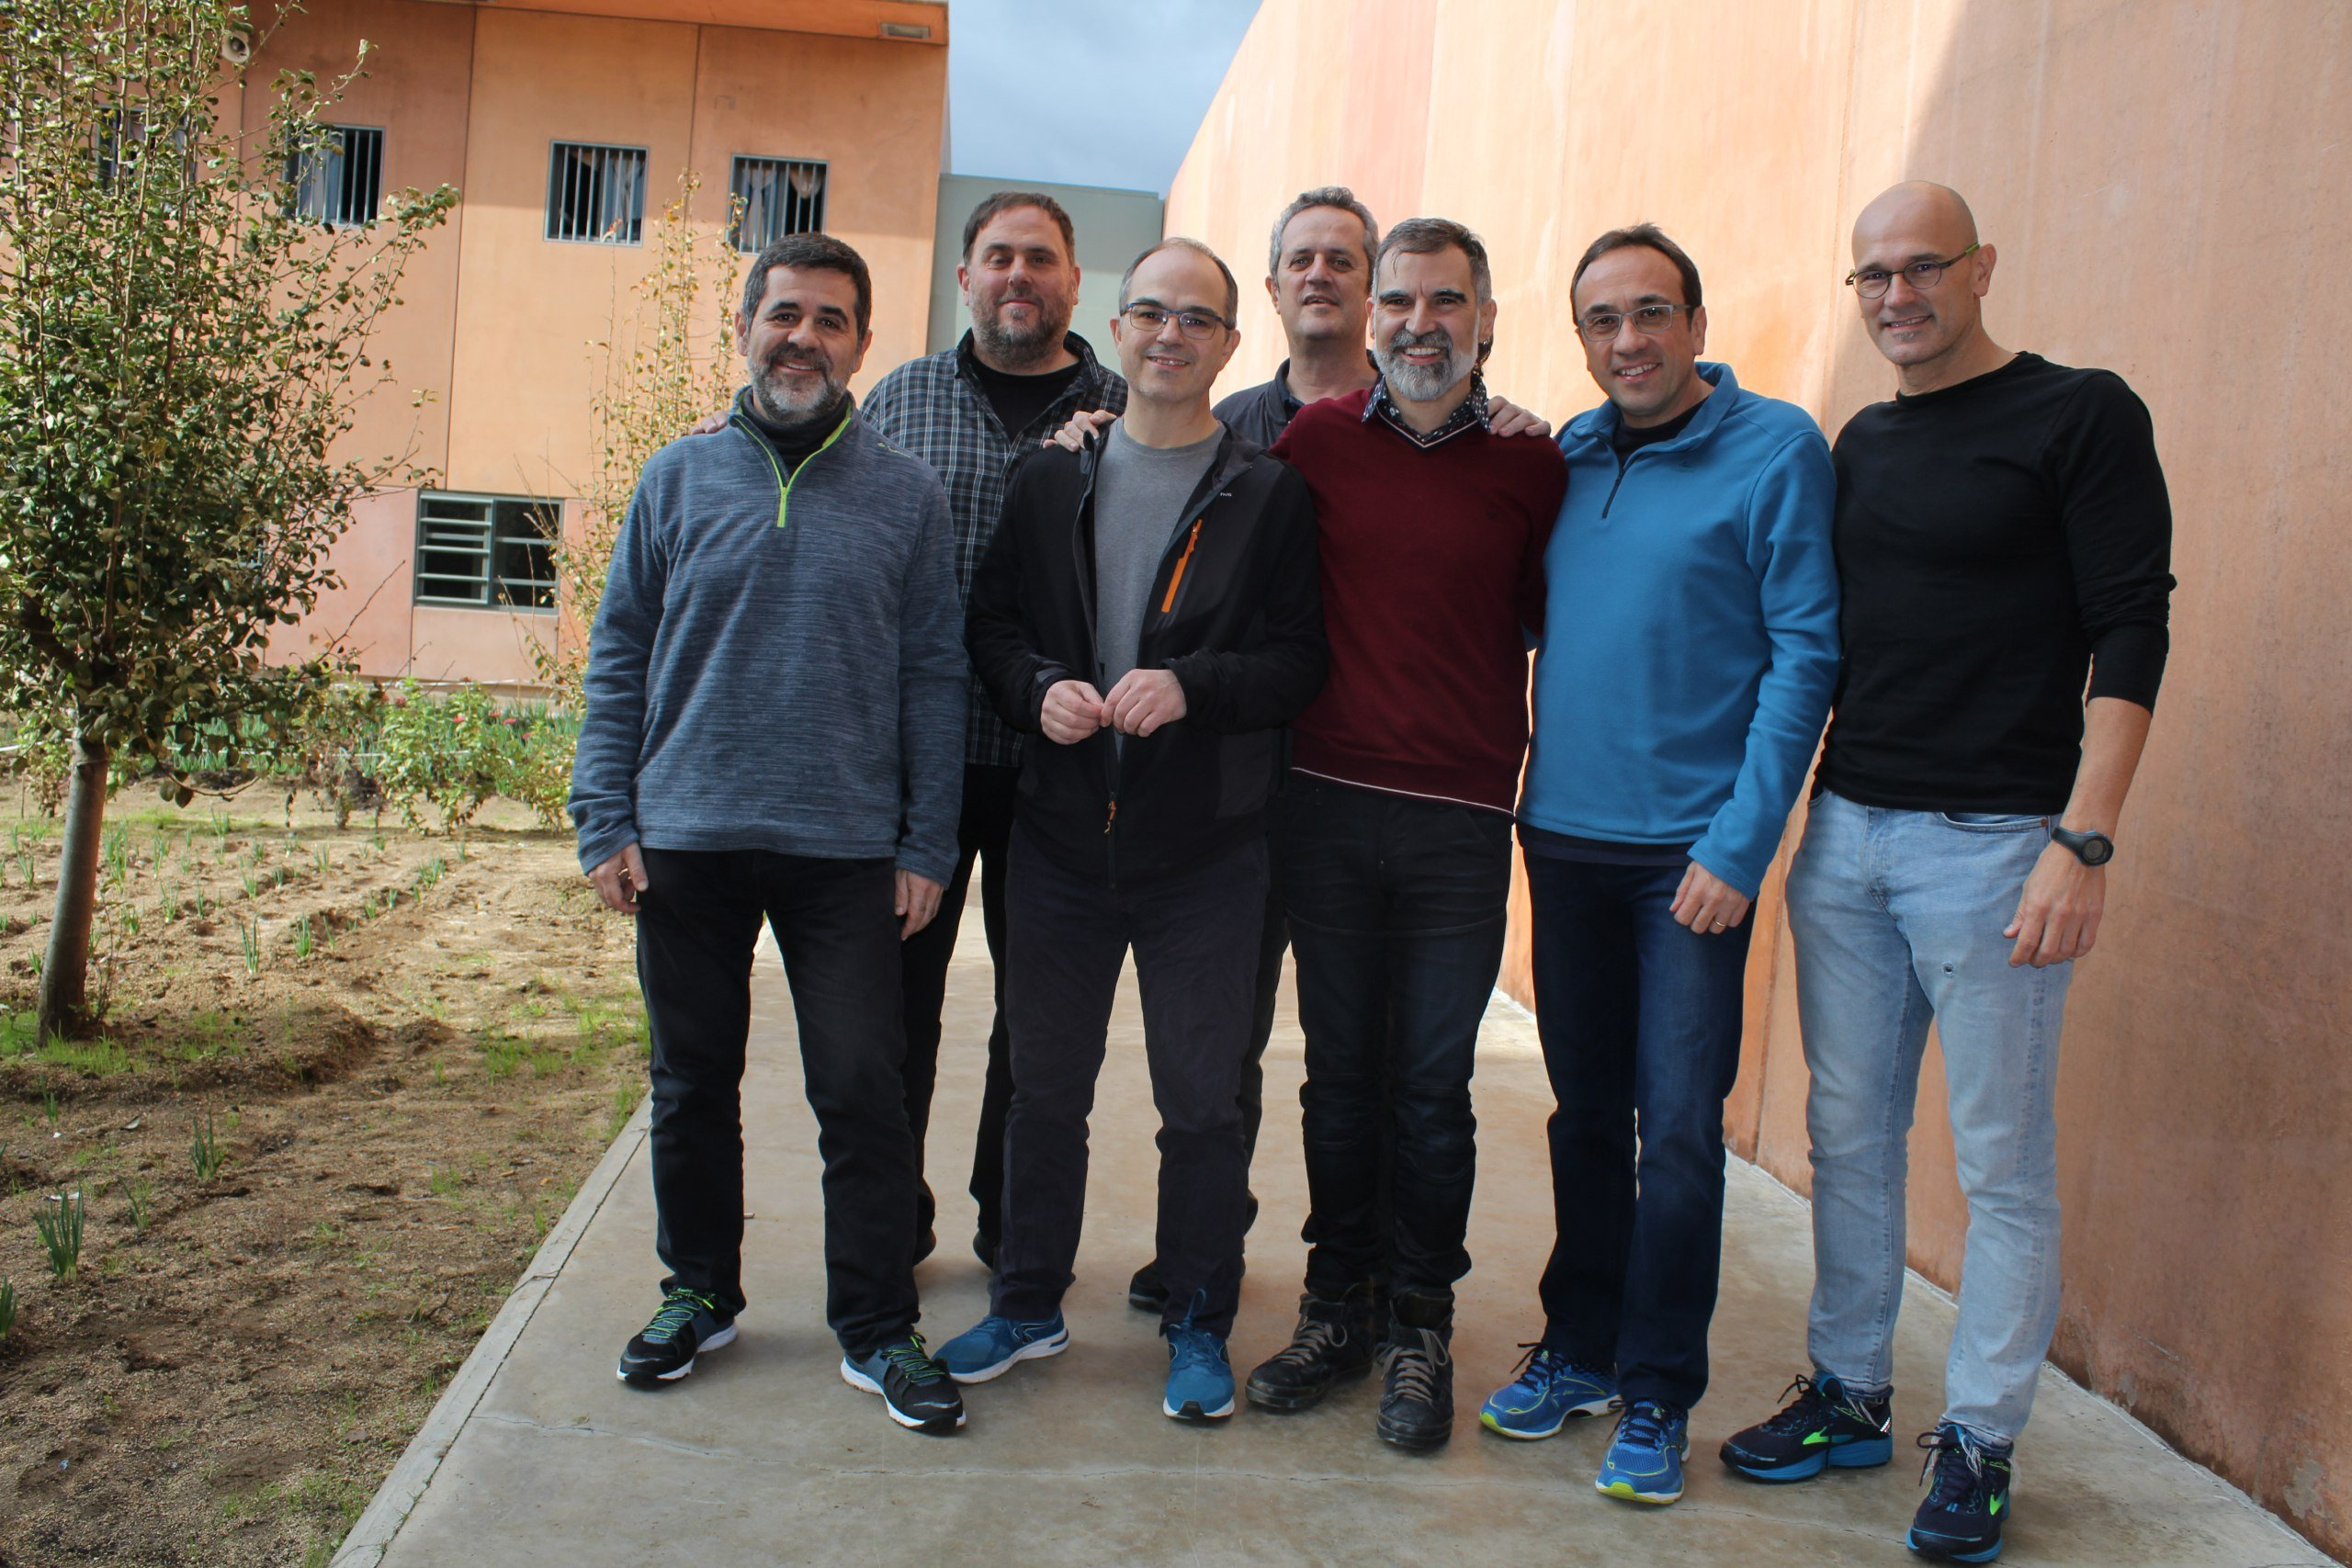 The men Catalan political prisoners, pictured in Lledoners jail